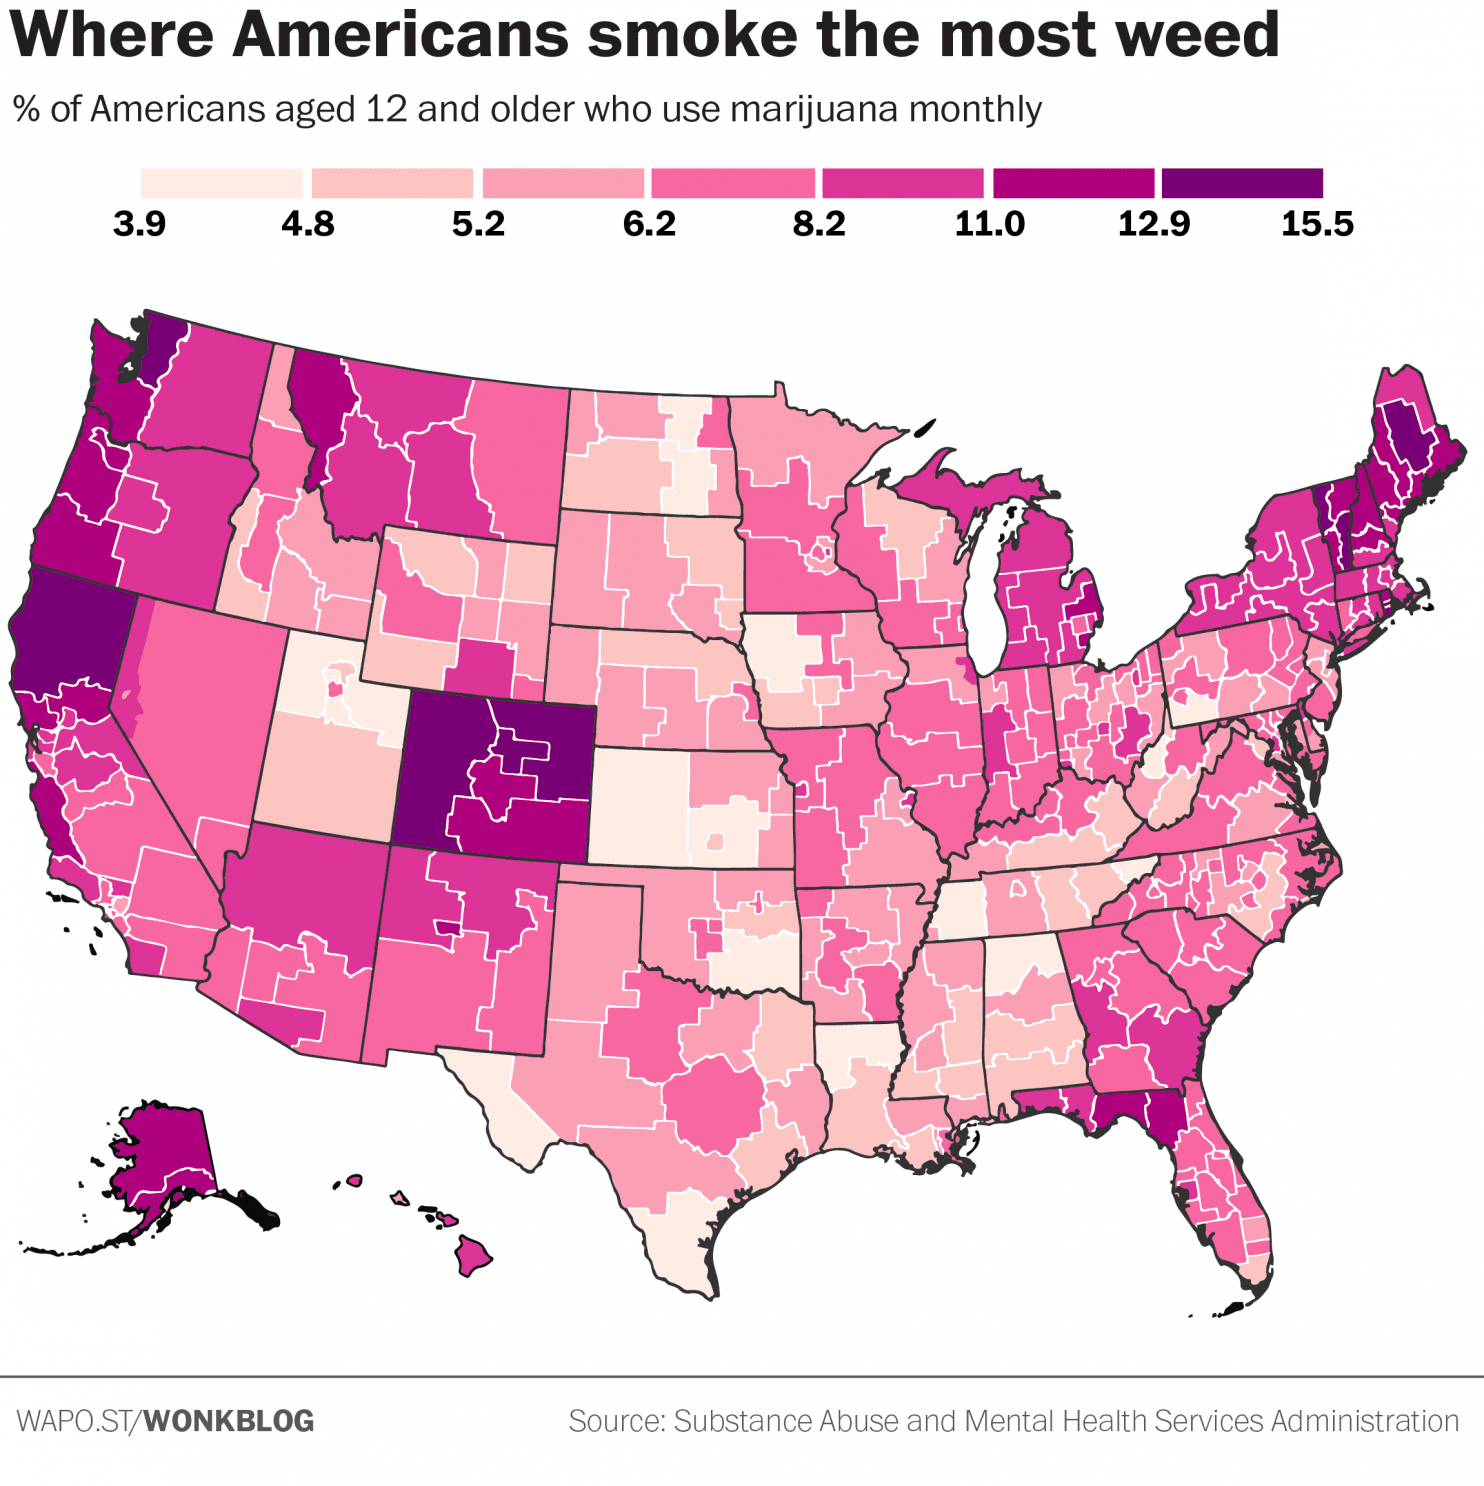 Where Americans smoke the most weed?